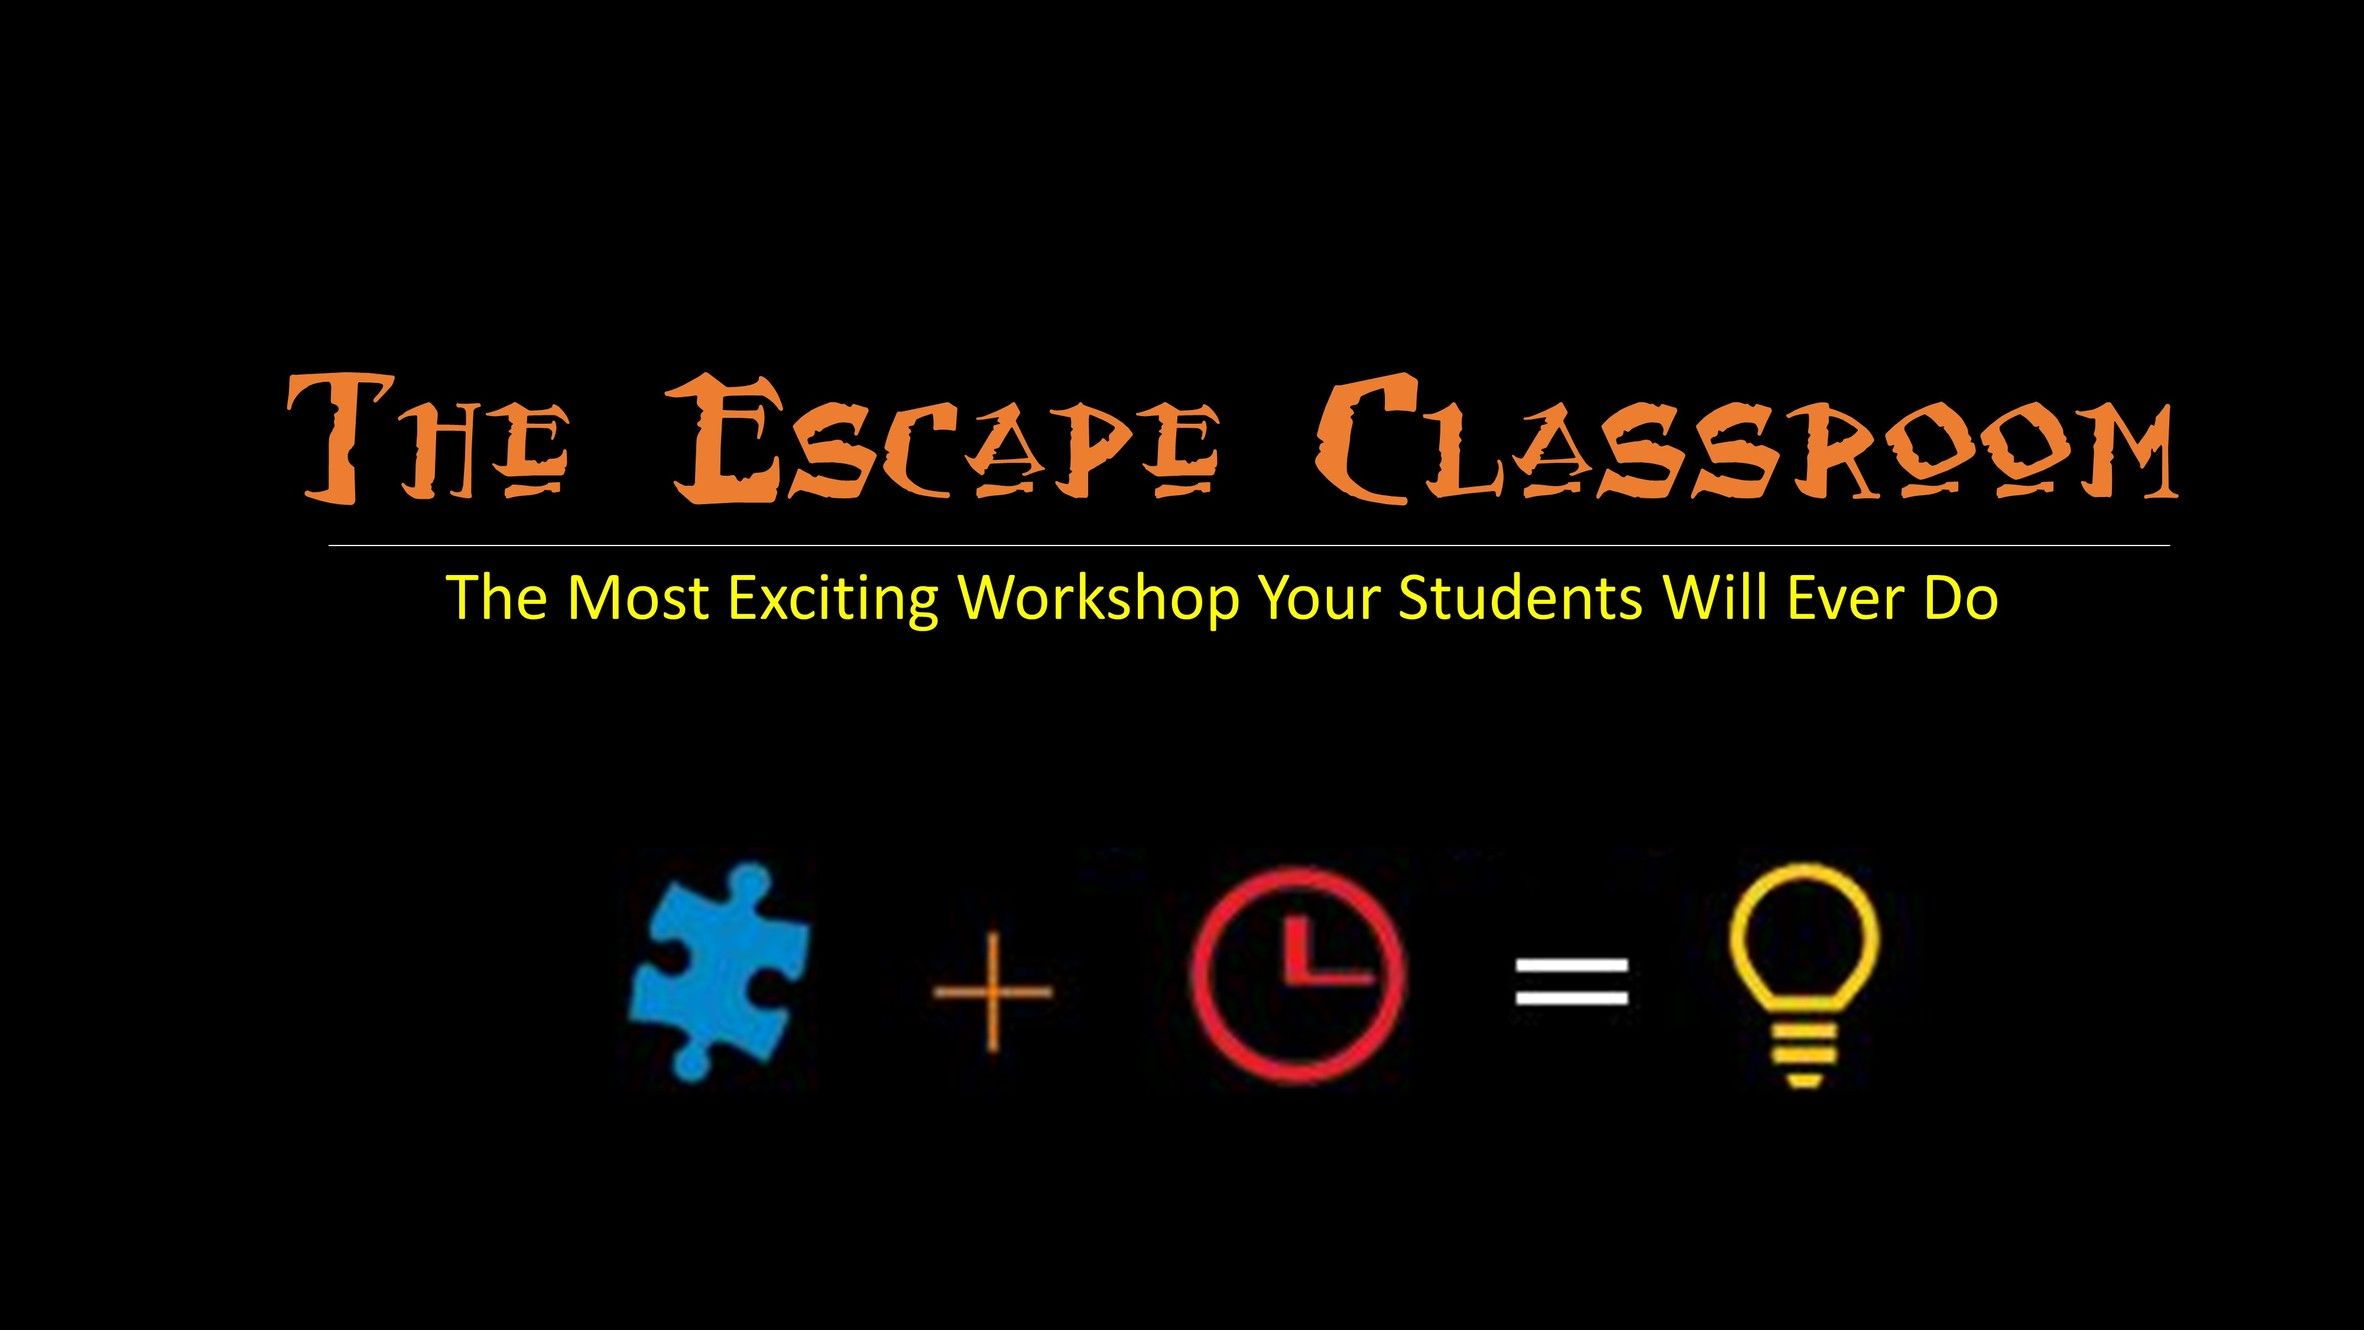 Get Your Free Mystery Workshop For Your Classroom In